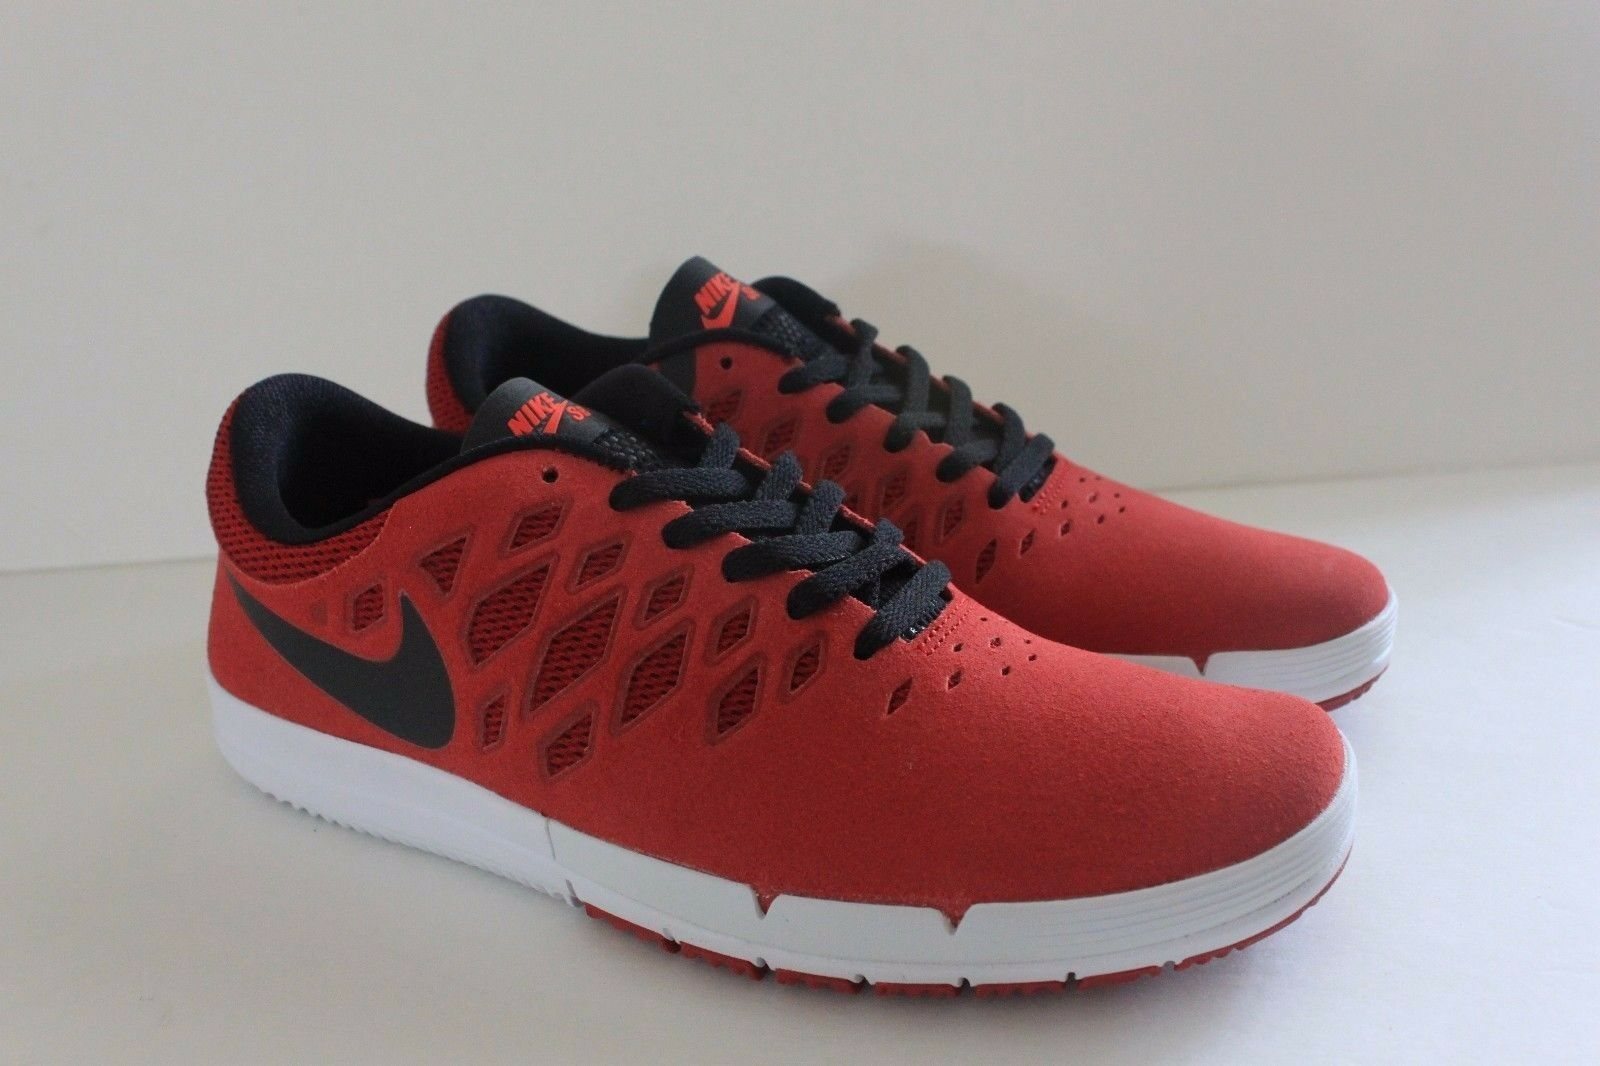 Nike Free SB Skate Shoe Sneaker Size 10 Eur 44 704936 606 Red Black NIB Men's